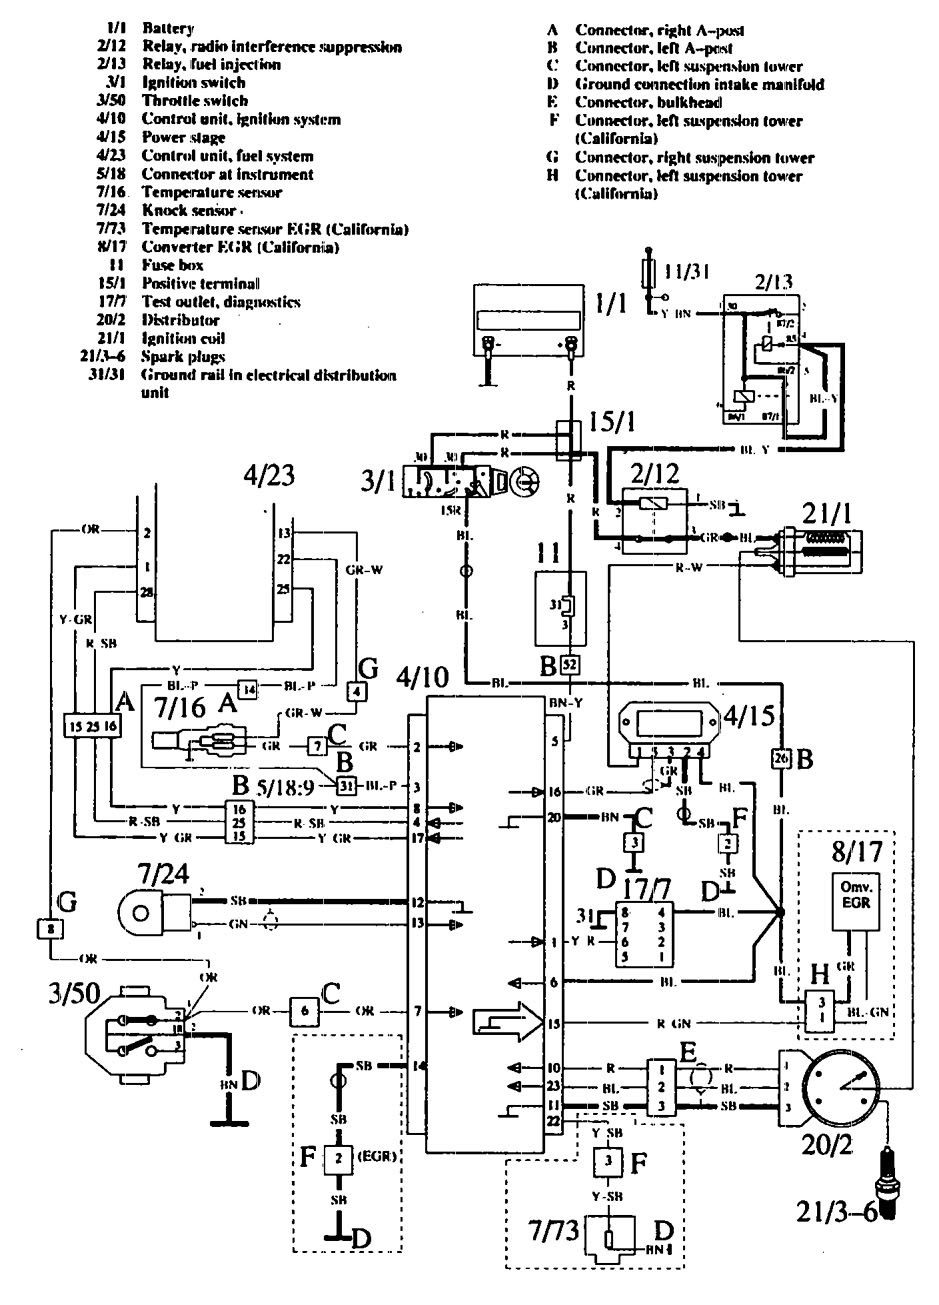 Wiring Diagram For 4565326 W